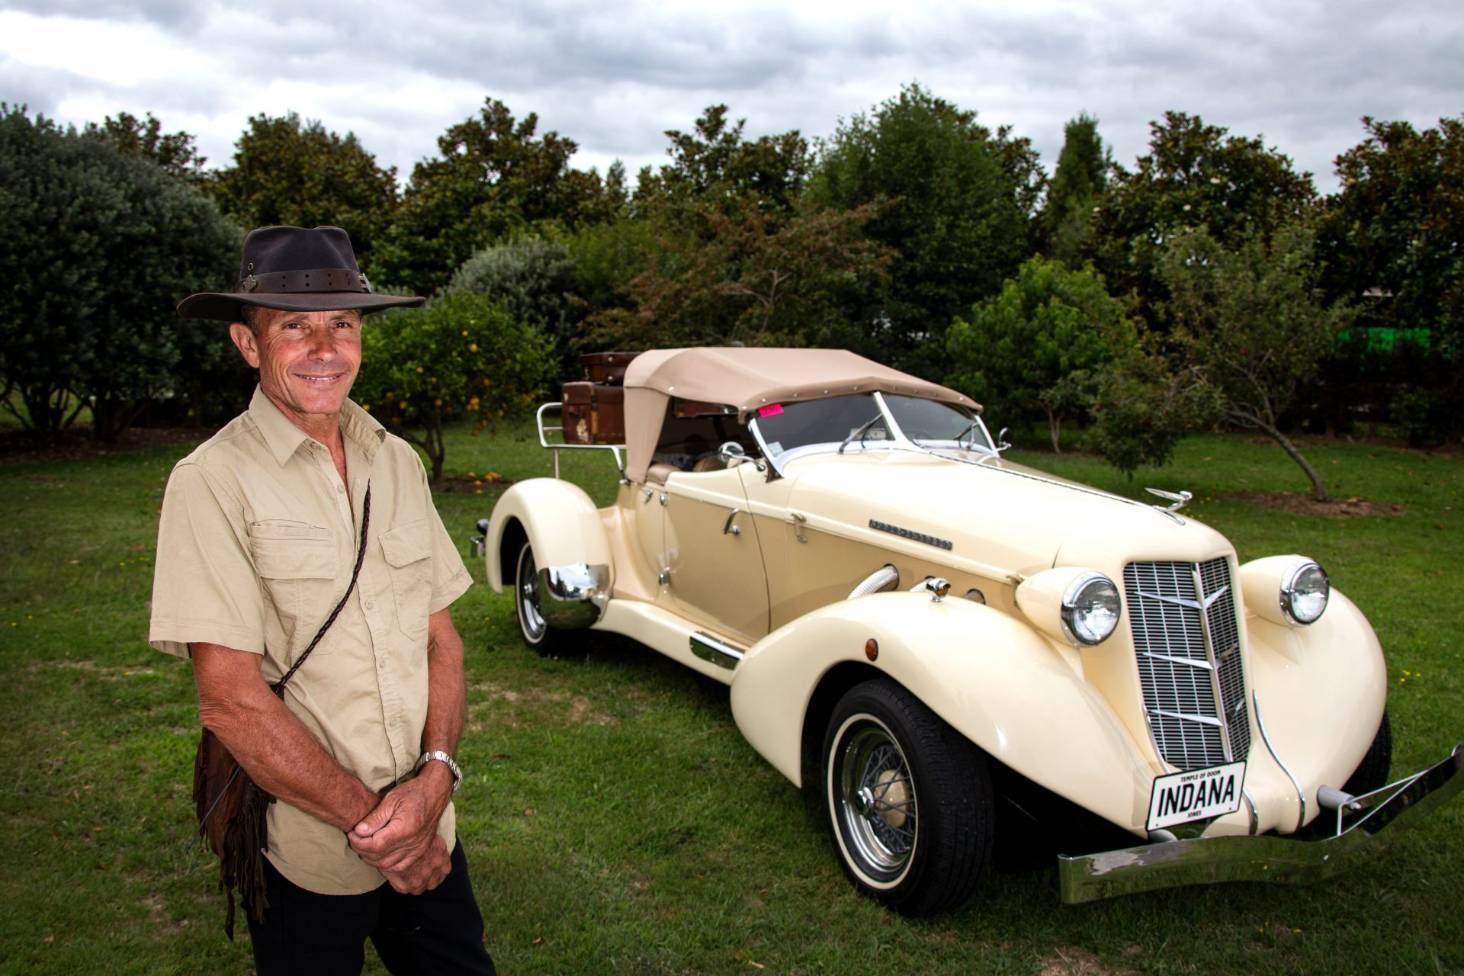 Indiana Jones car from the Temple of Doom found in New